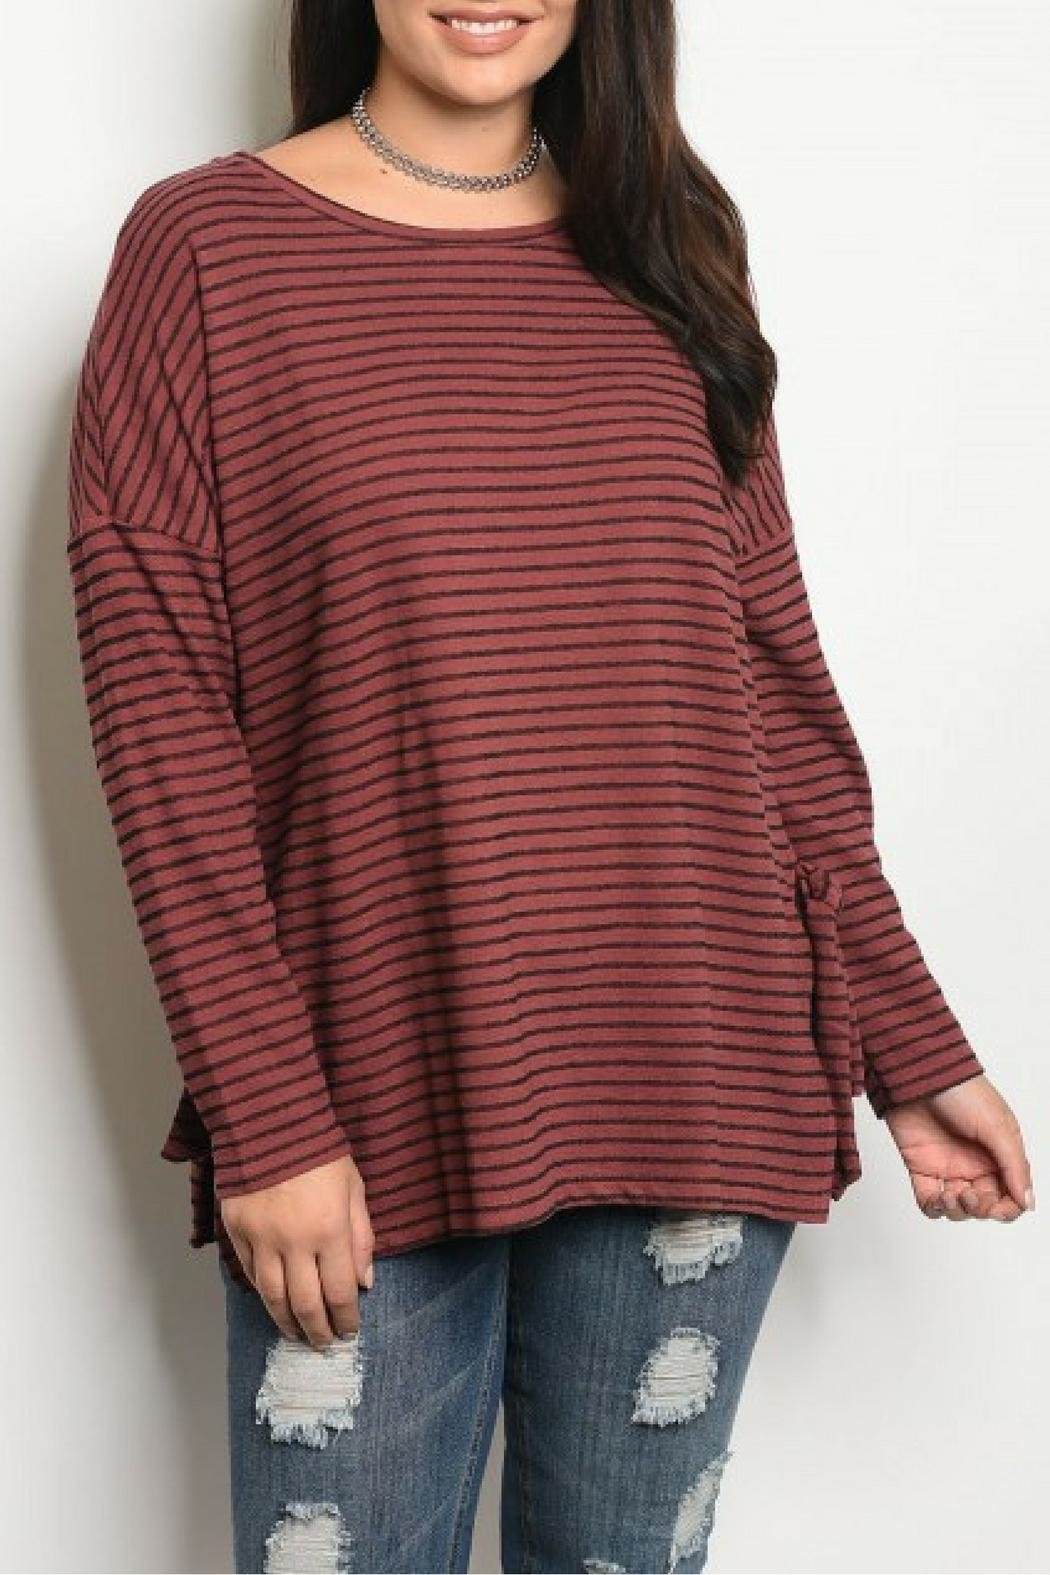 COVERSTITCHED Burgundy Stripe Top - Main Image